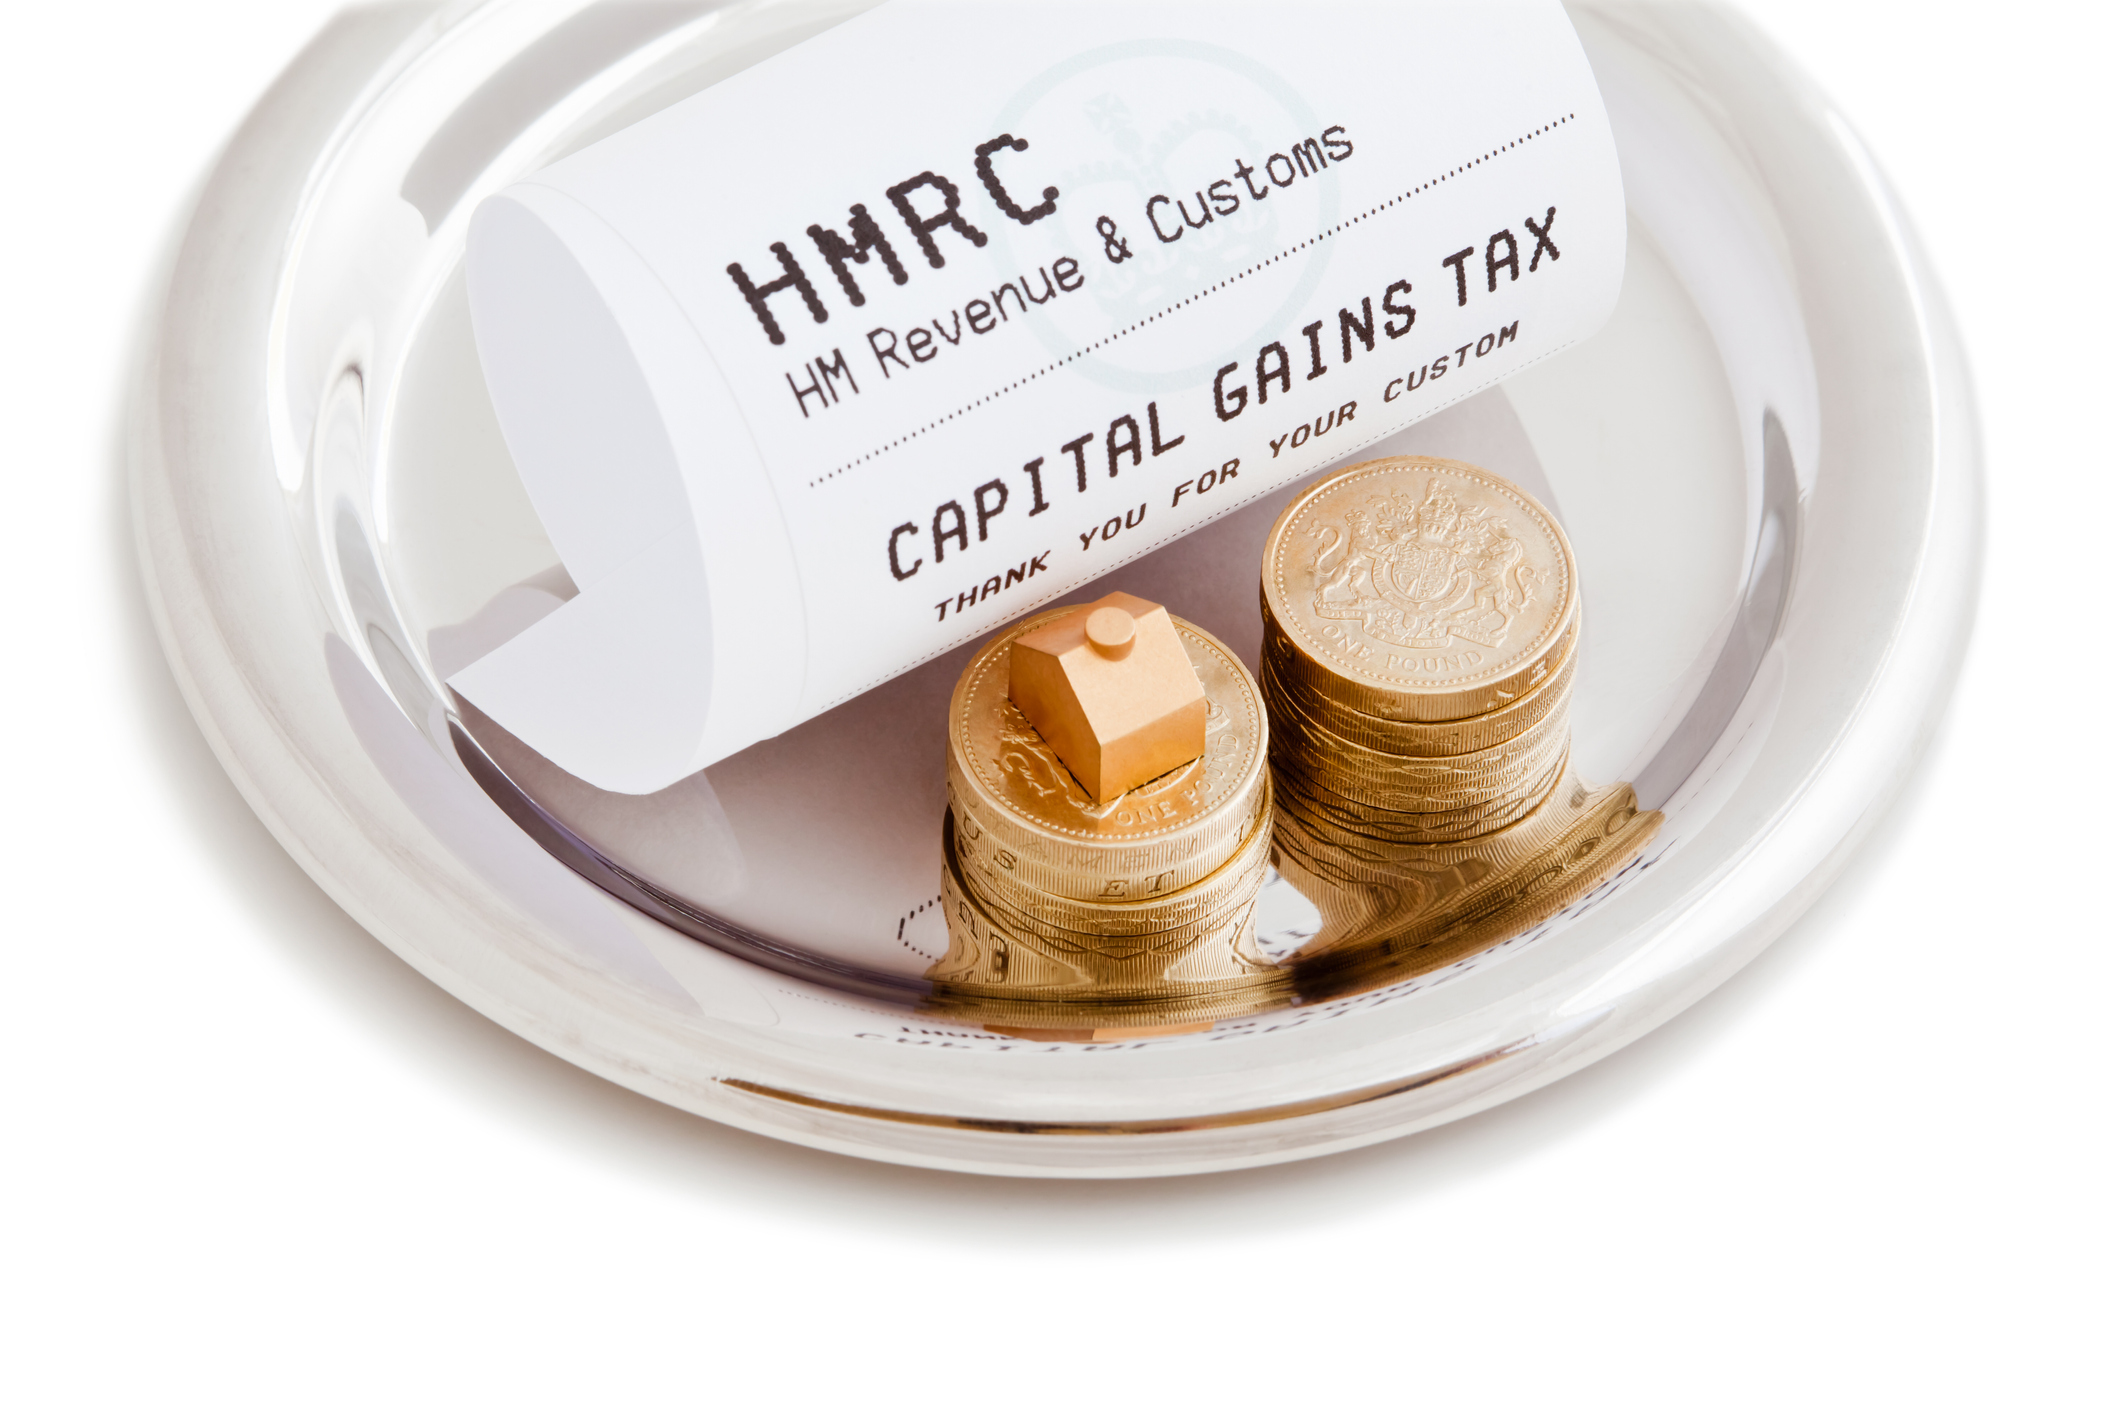 Receipt from HMRC reading Capital Gains Tax